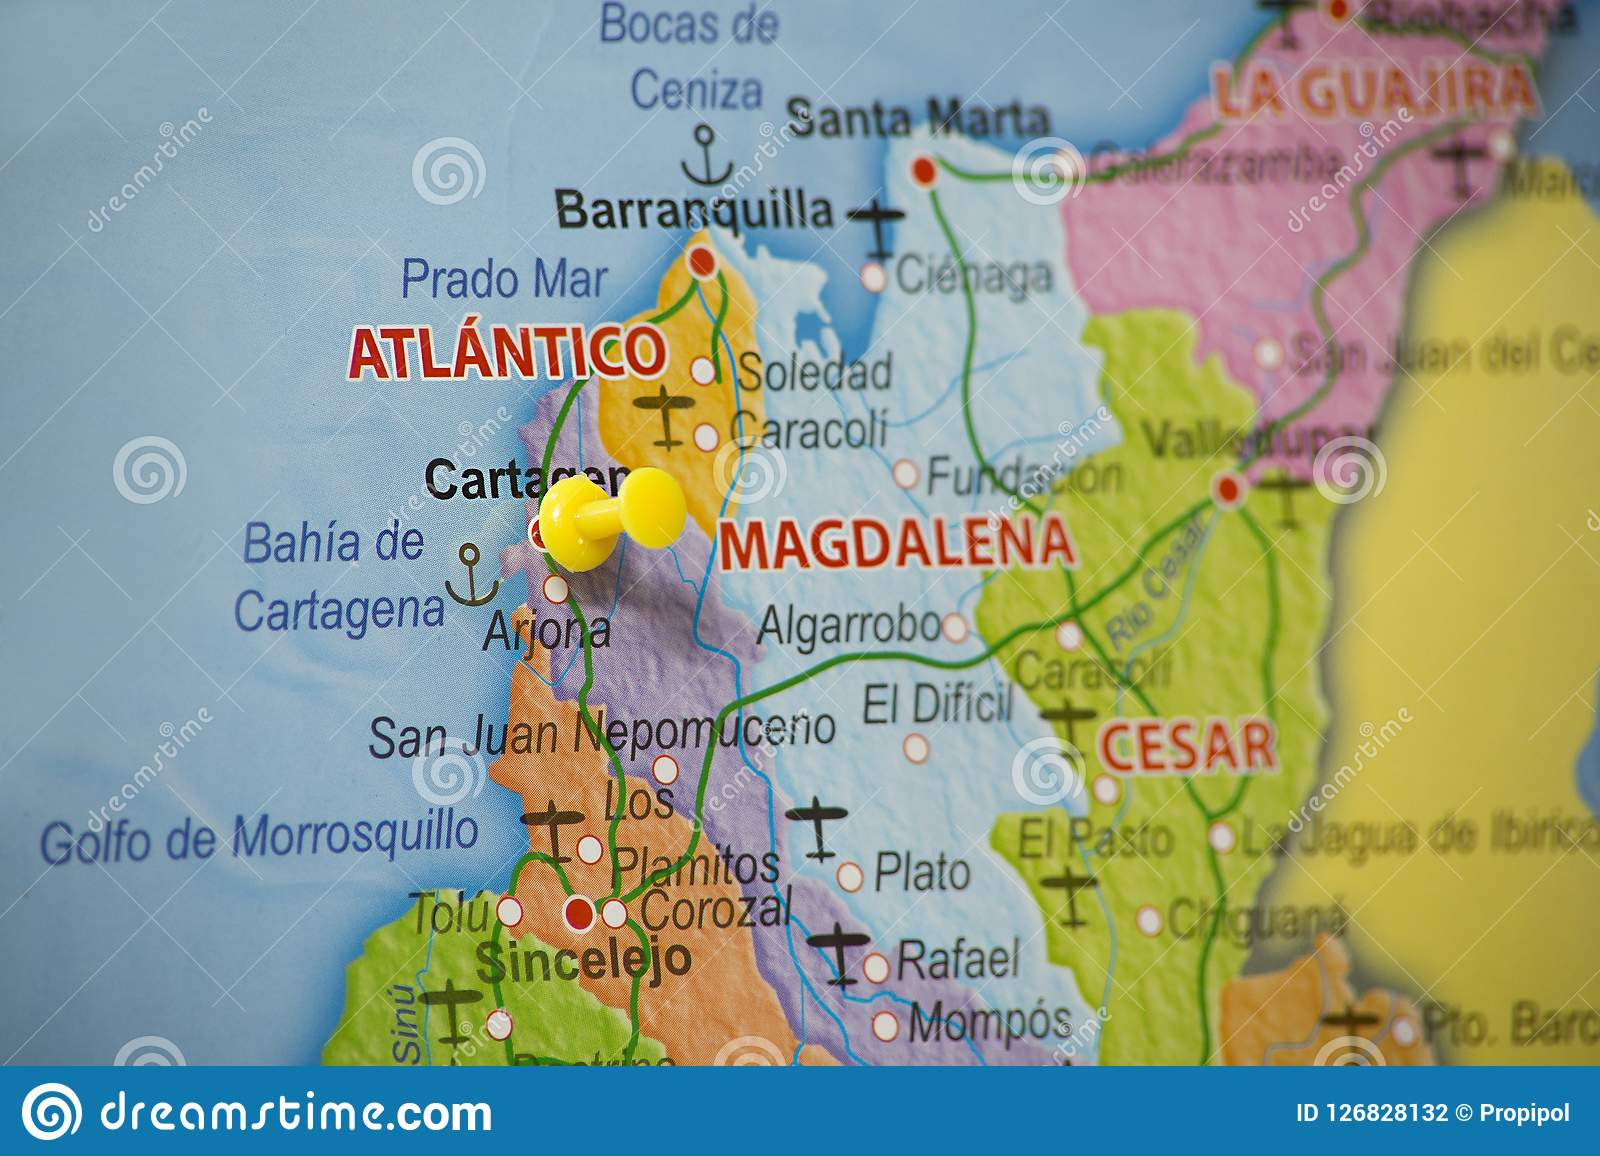 Cartagena Colombia Map Geographical Location Of Cartagena Colombia Stock Photo   Image of